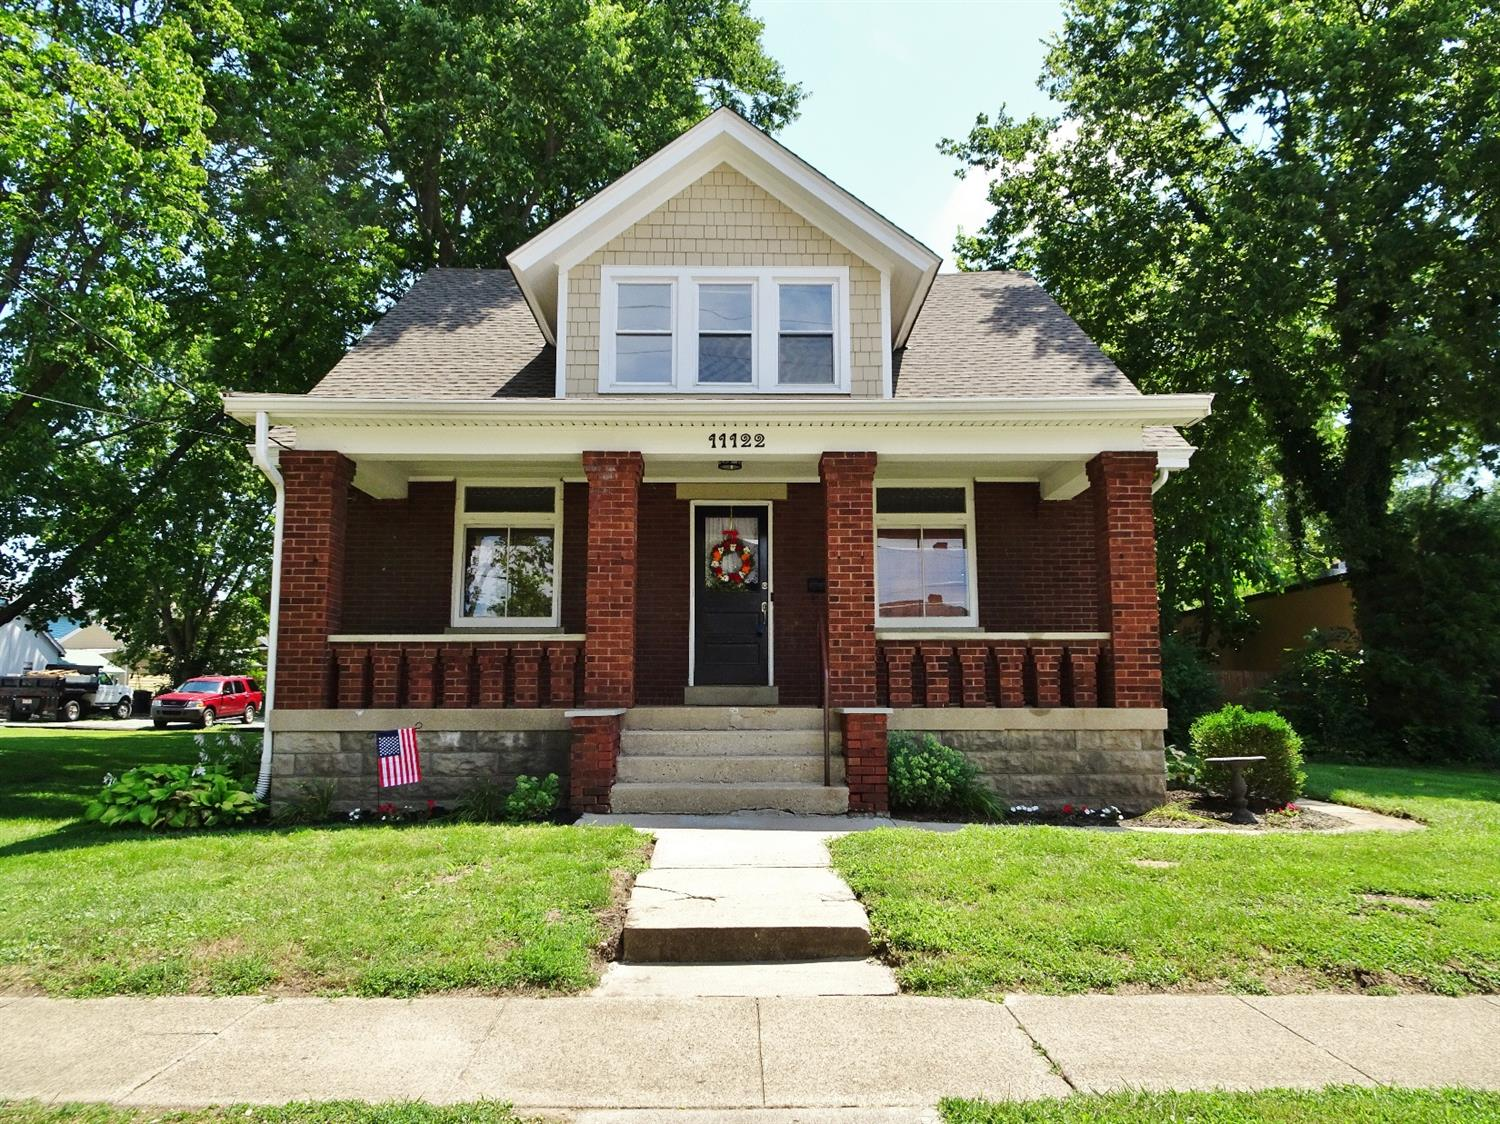 Property for sale at 11122 Main Street, Sharonville,  OH 45241